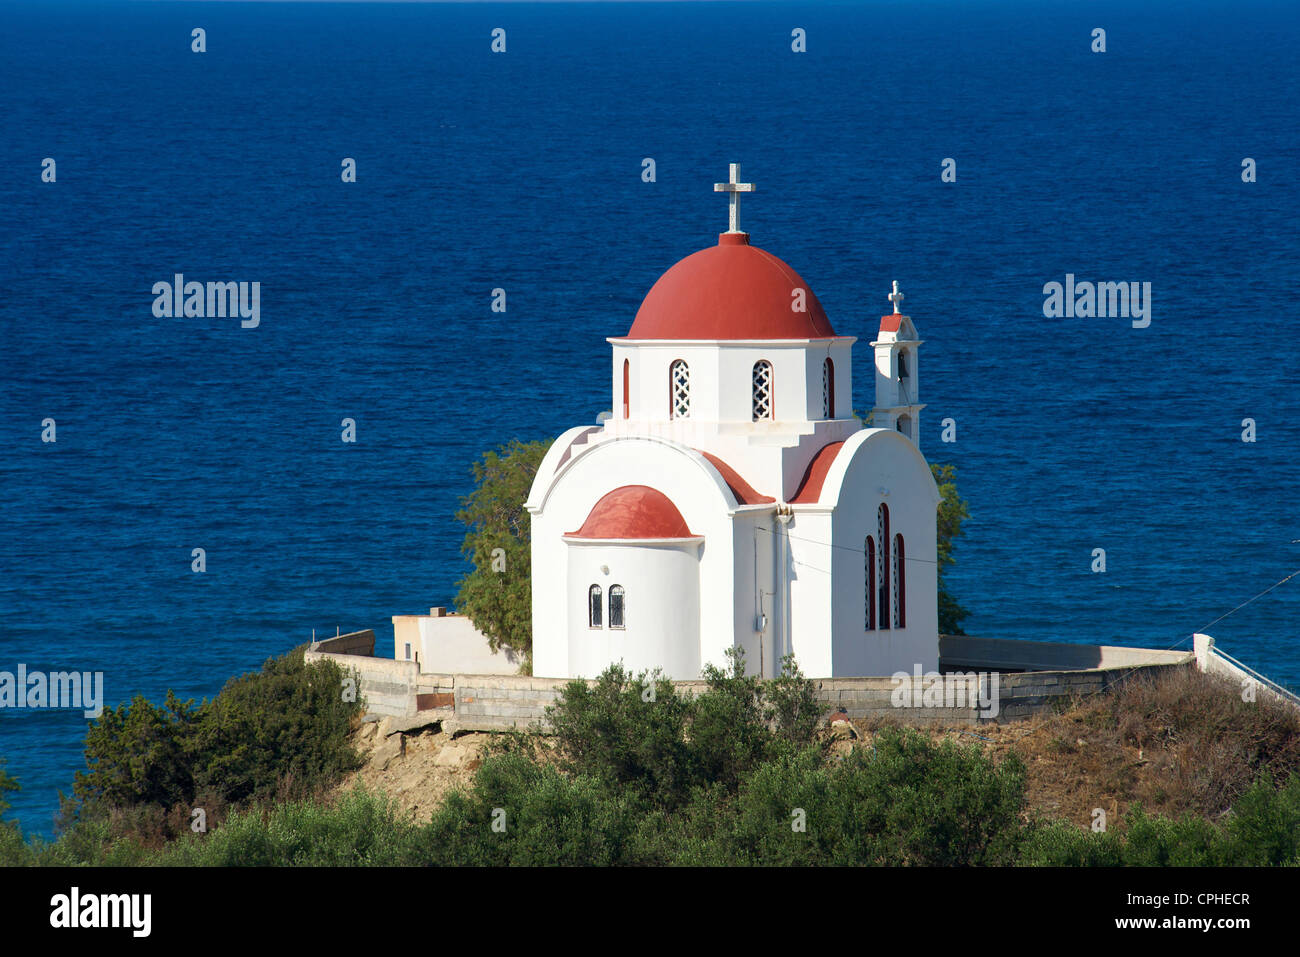 Crete, Greece, Europe, in Greek, island, isle, islands, isles, Mediterranean Sea, Europe, European, outdoors, day, - Stock Image